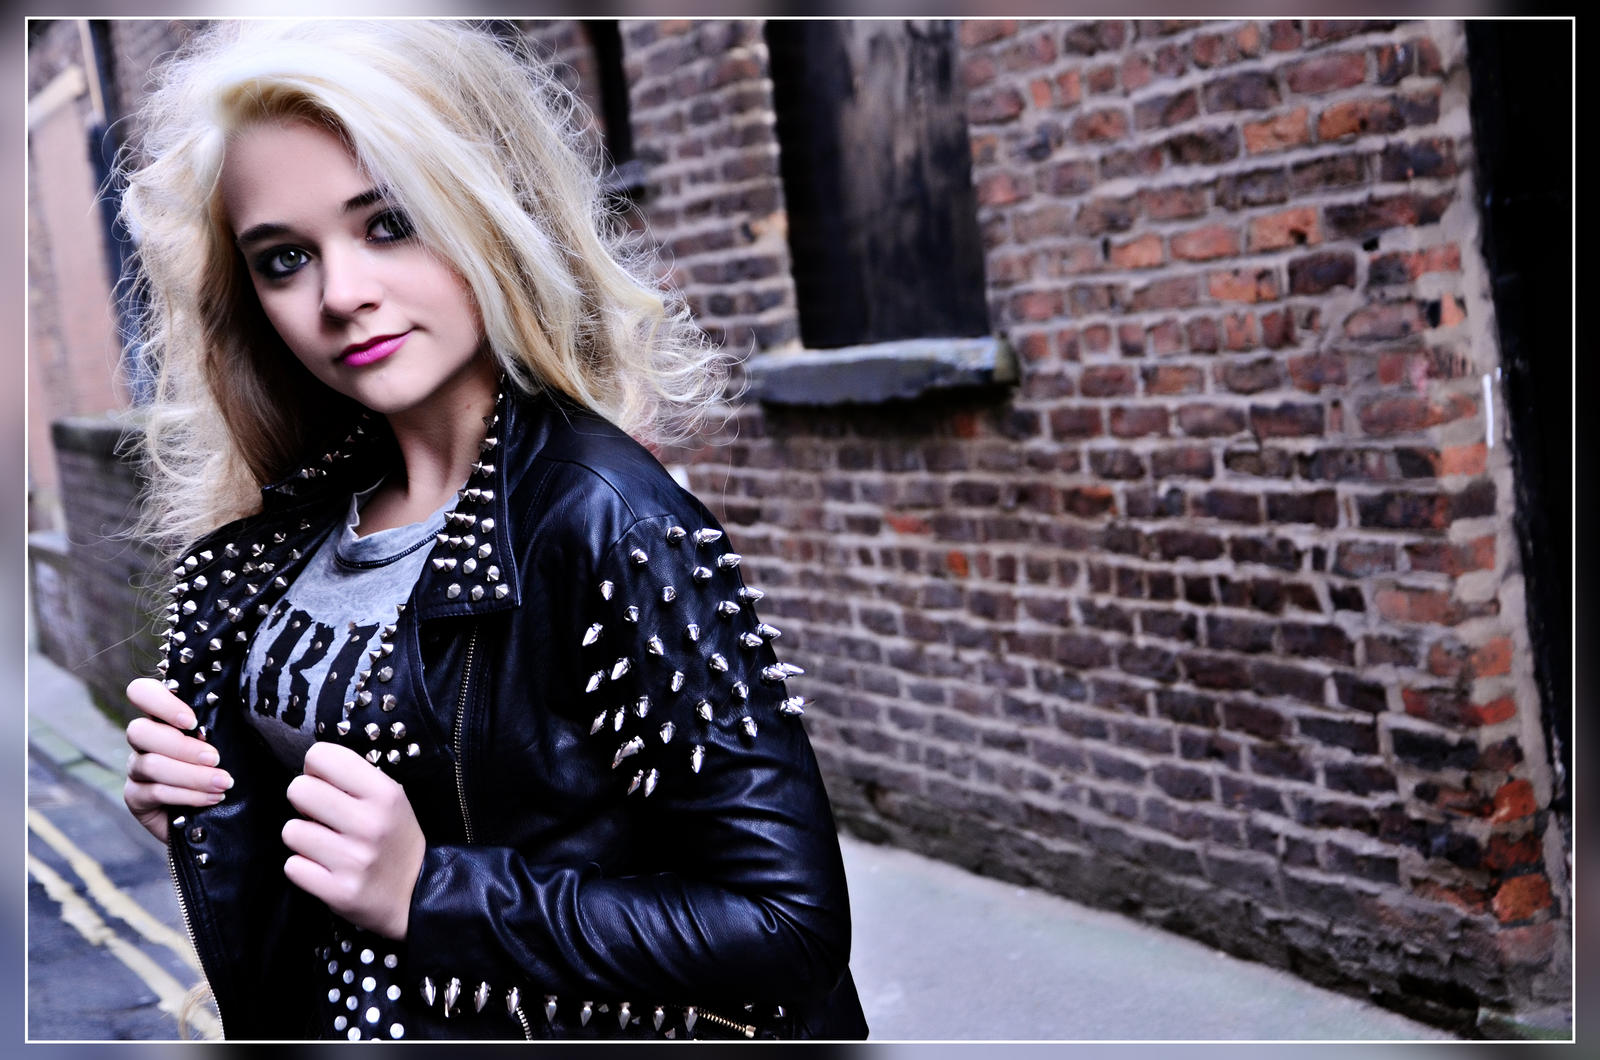 STOCK_56.7_Kube Studios _ The Streets by Bellastanyer-STOCK